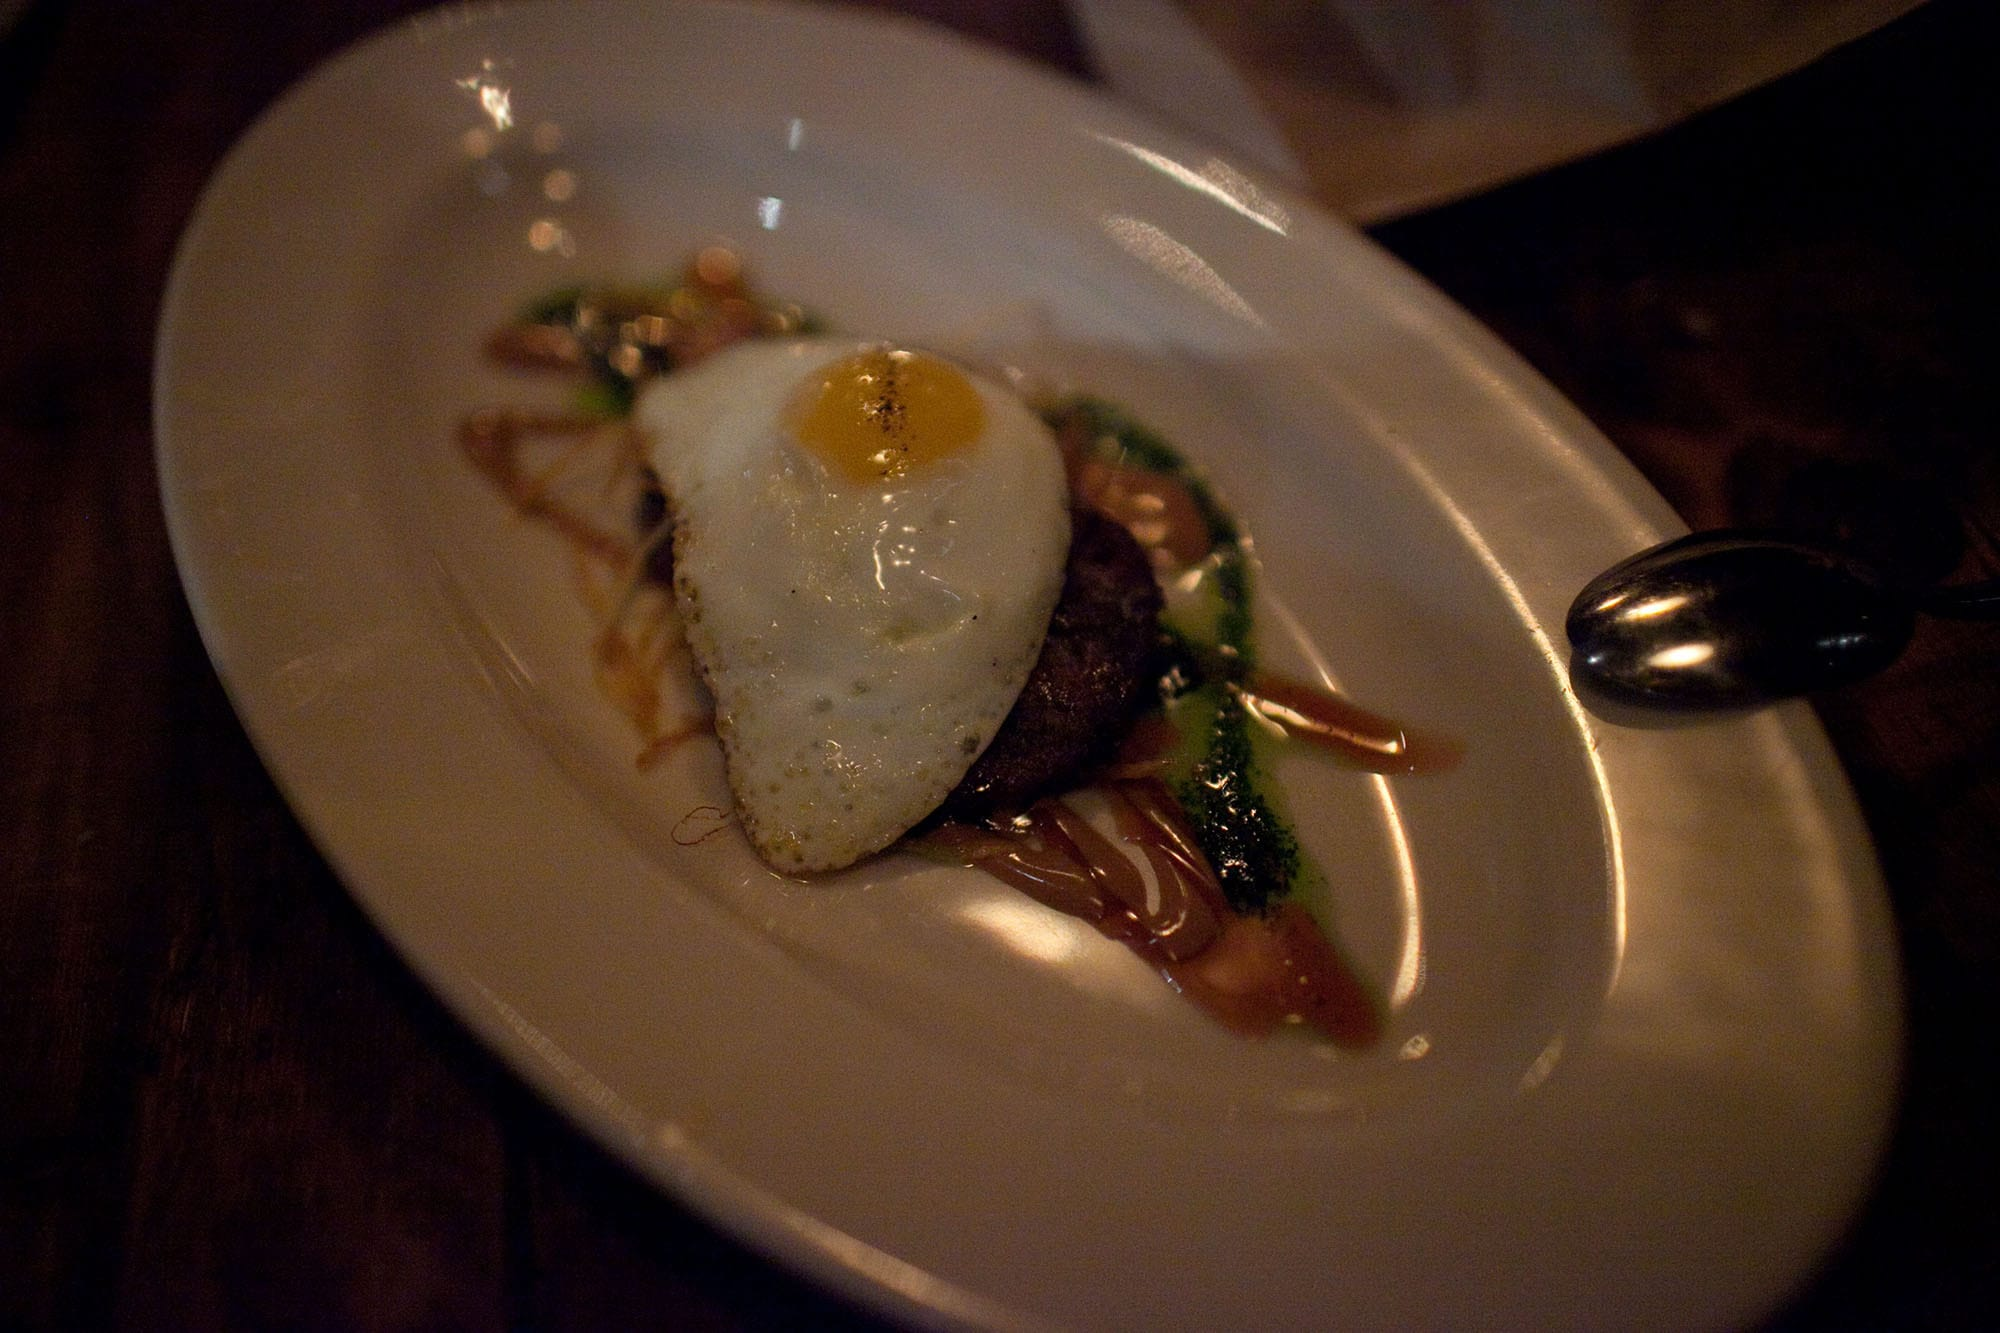 Girl and the Goat - Wood oven roasted pig face with sunny side egg, tamarind, cilantro, and potato stix.